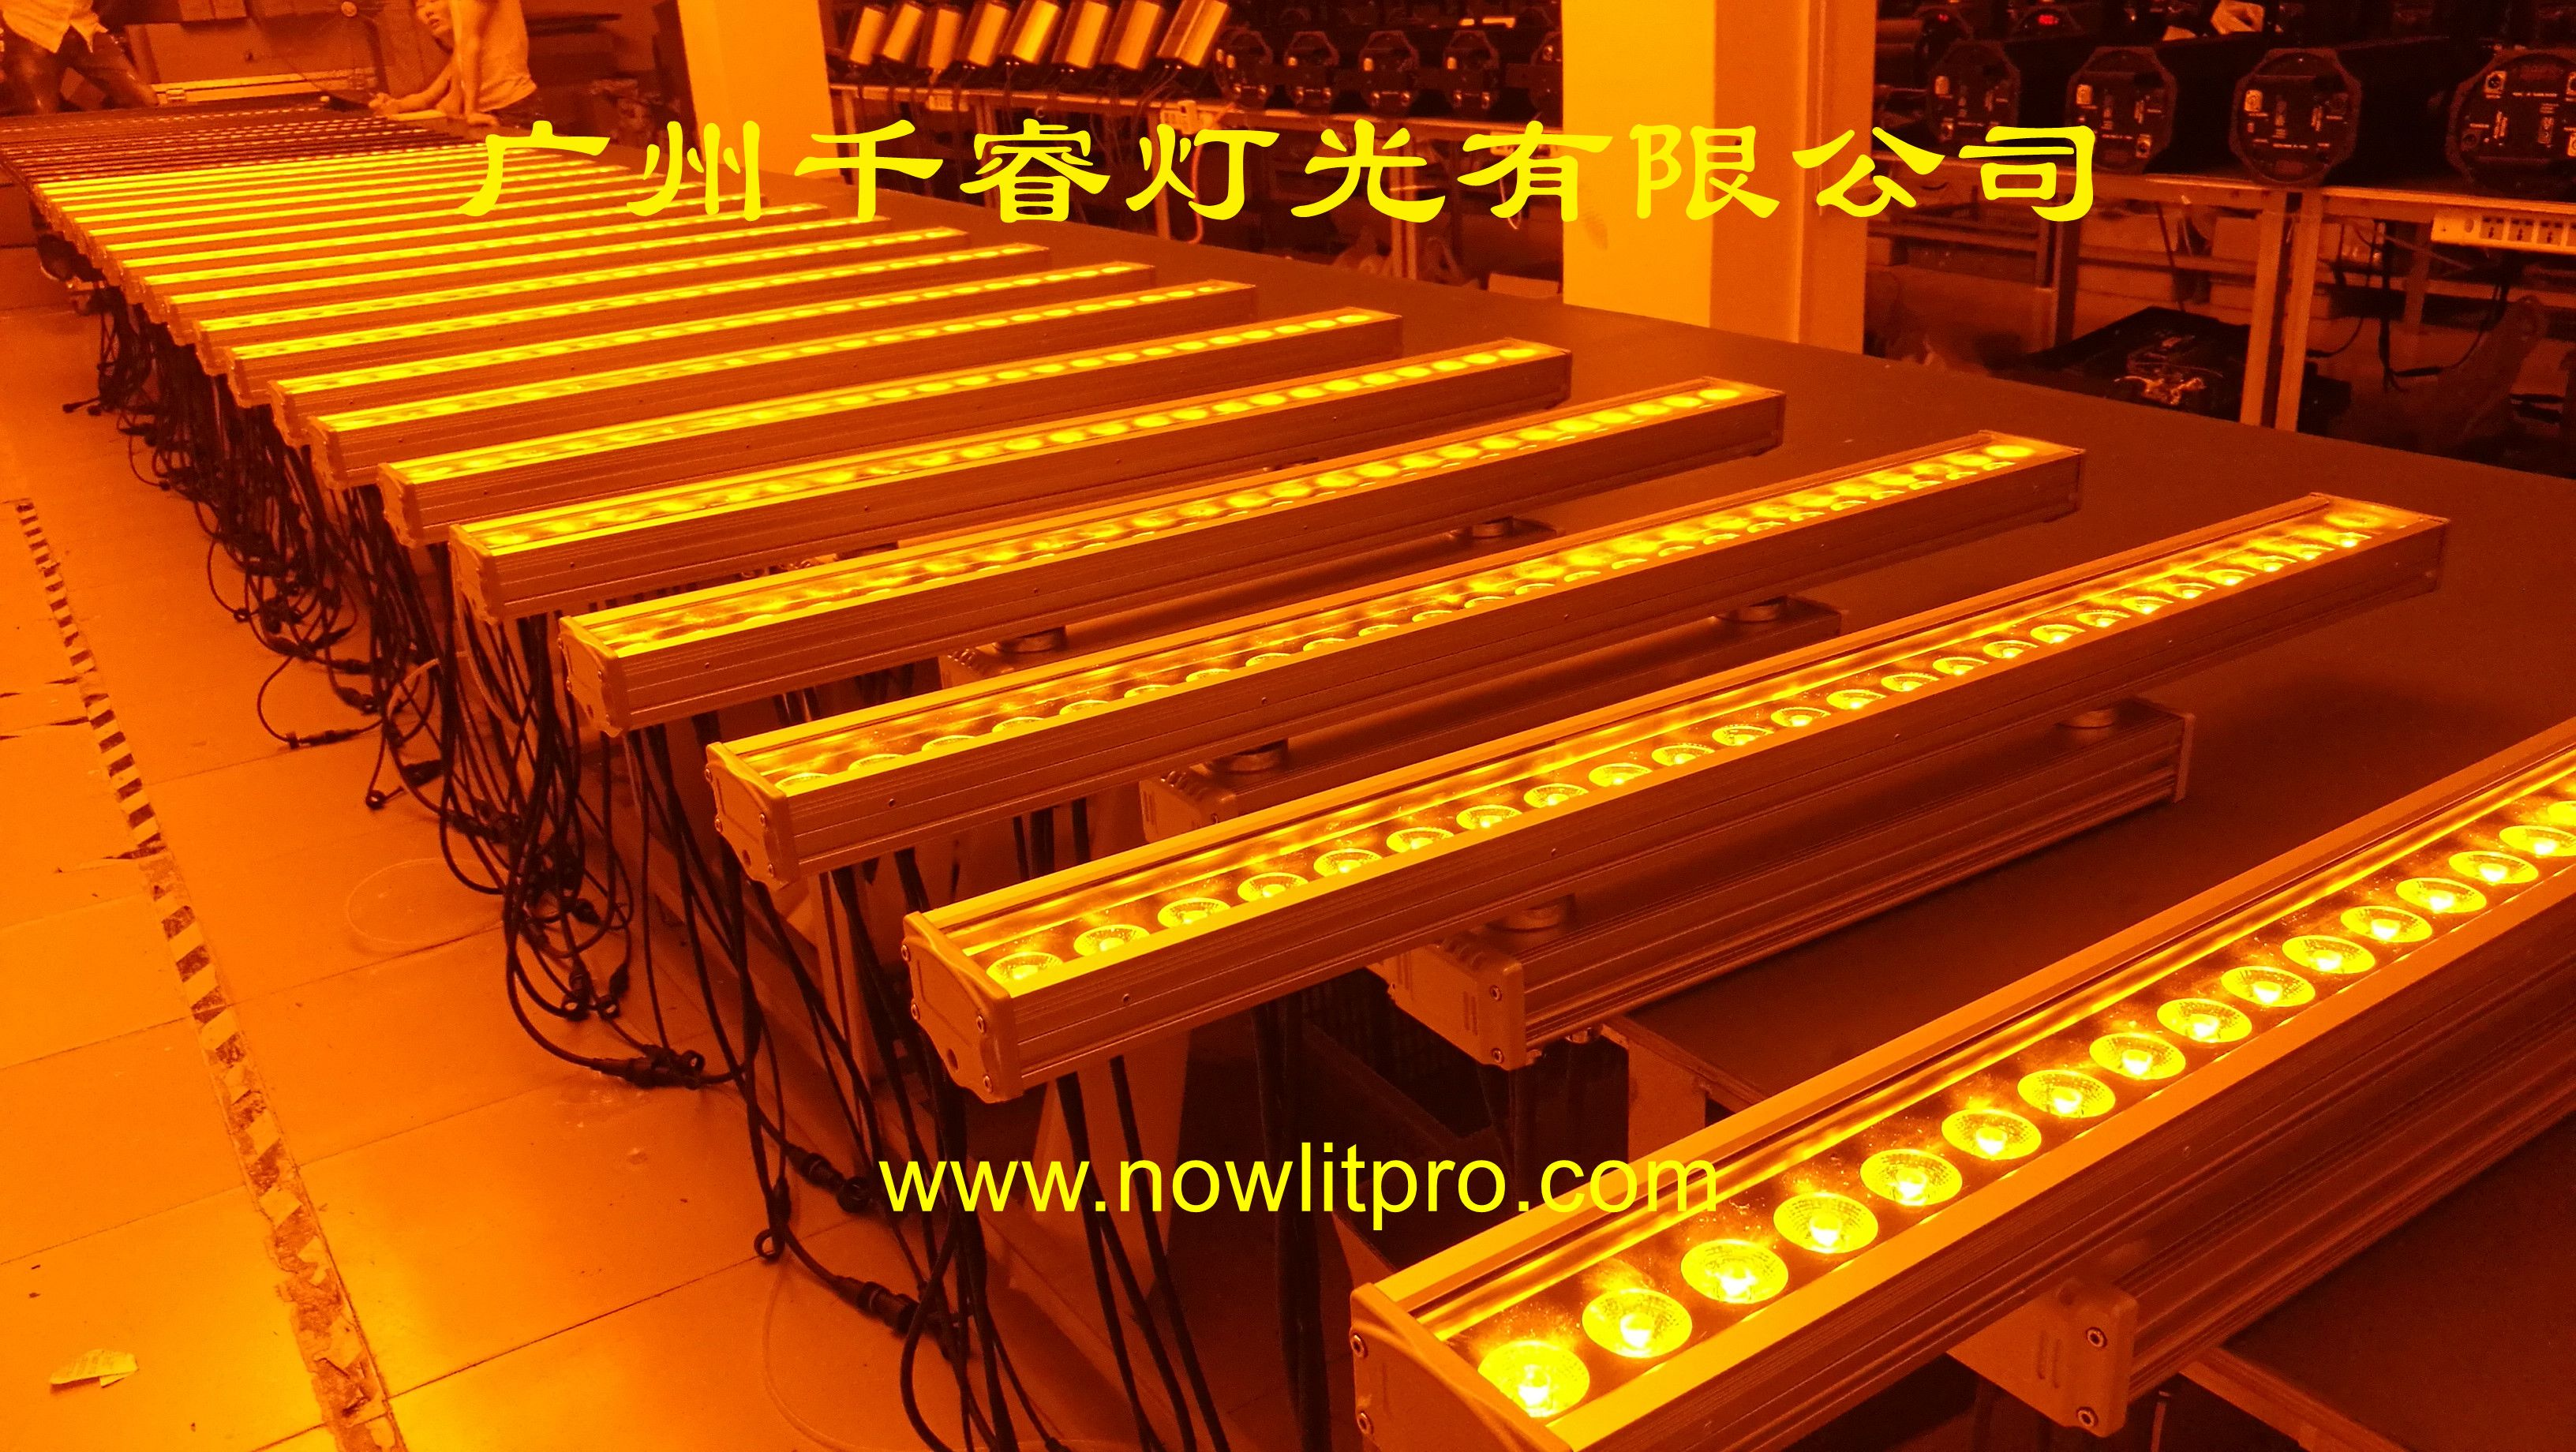 Led Wall China Led Wall Washer Factory Led Wall Washer Light Supplier